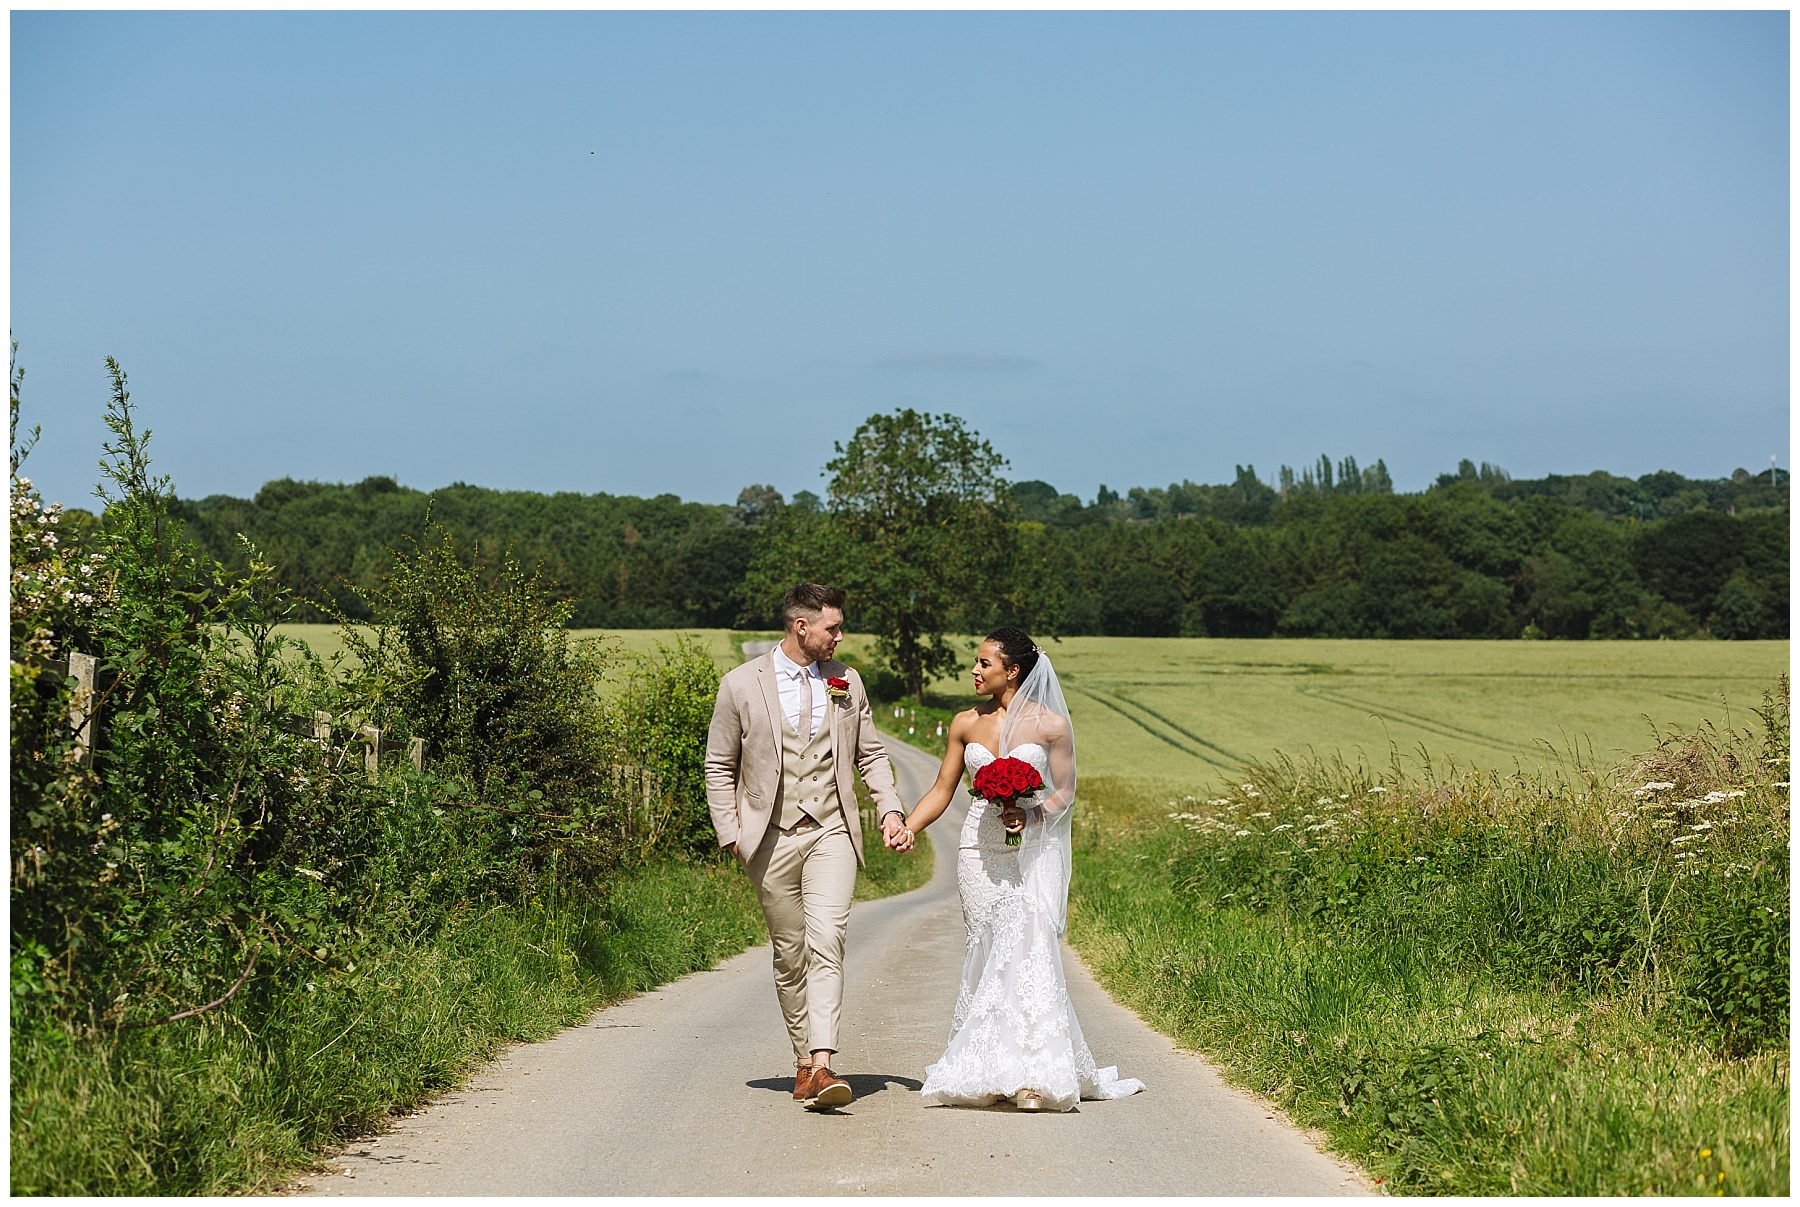 Swancar Farm Country House Hotel wedding